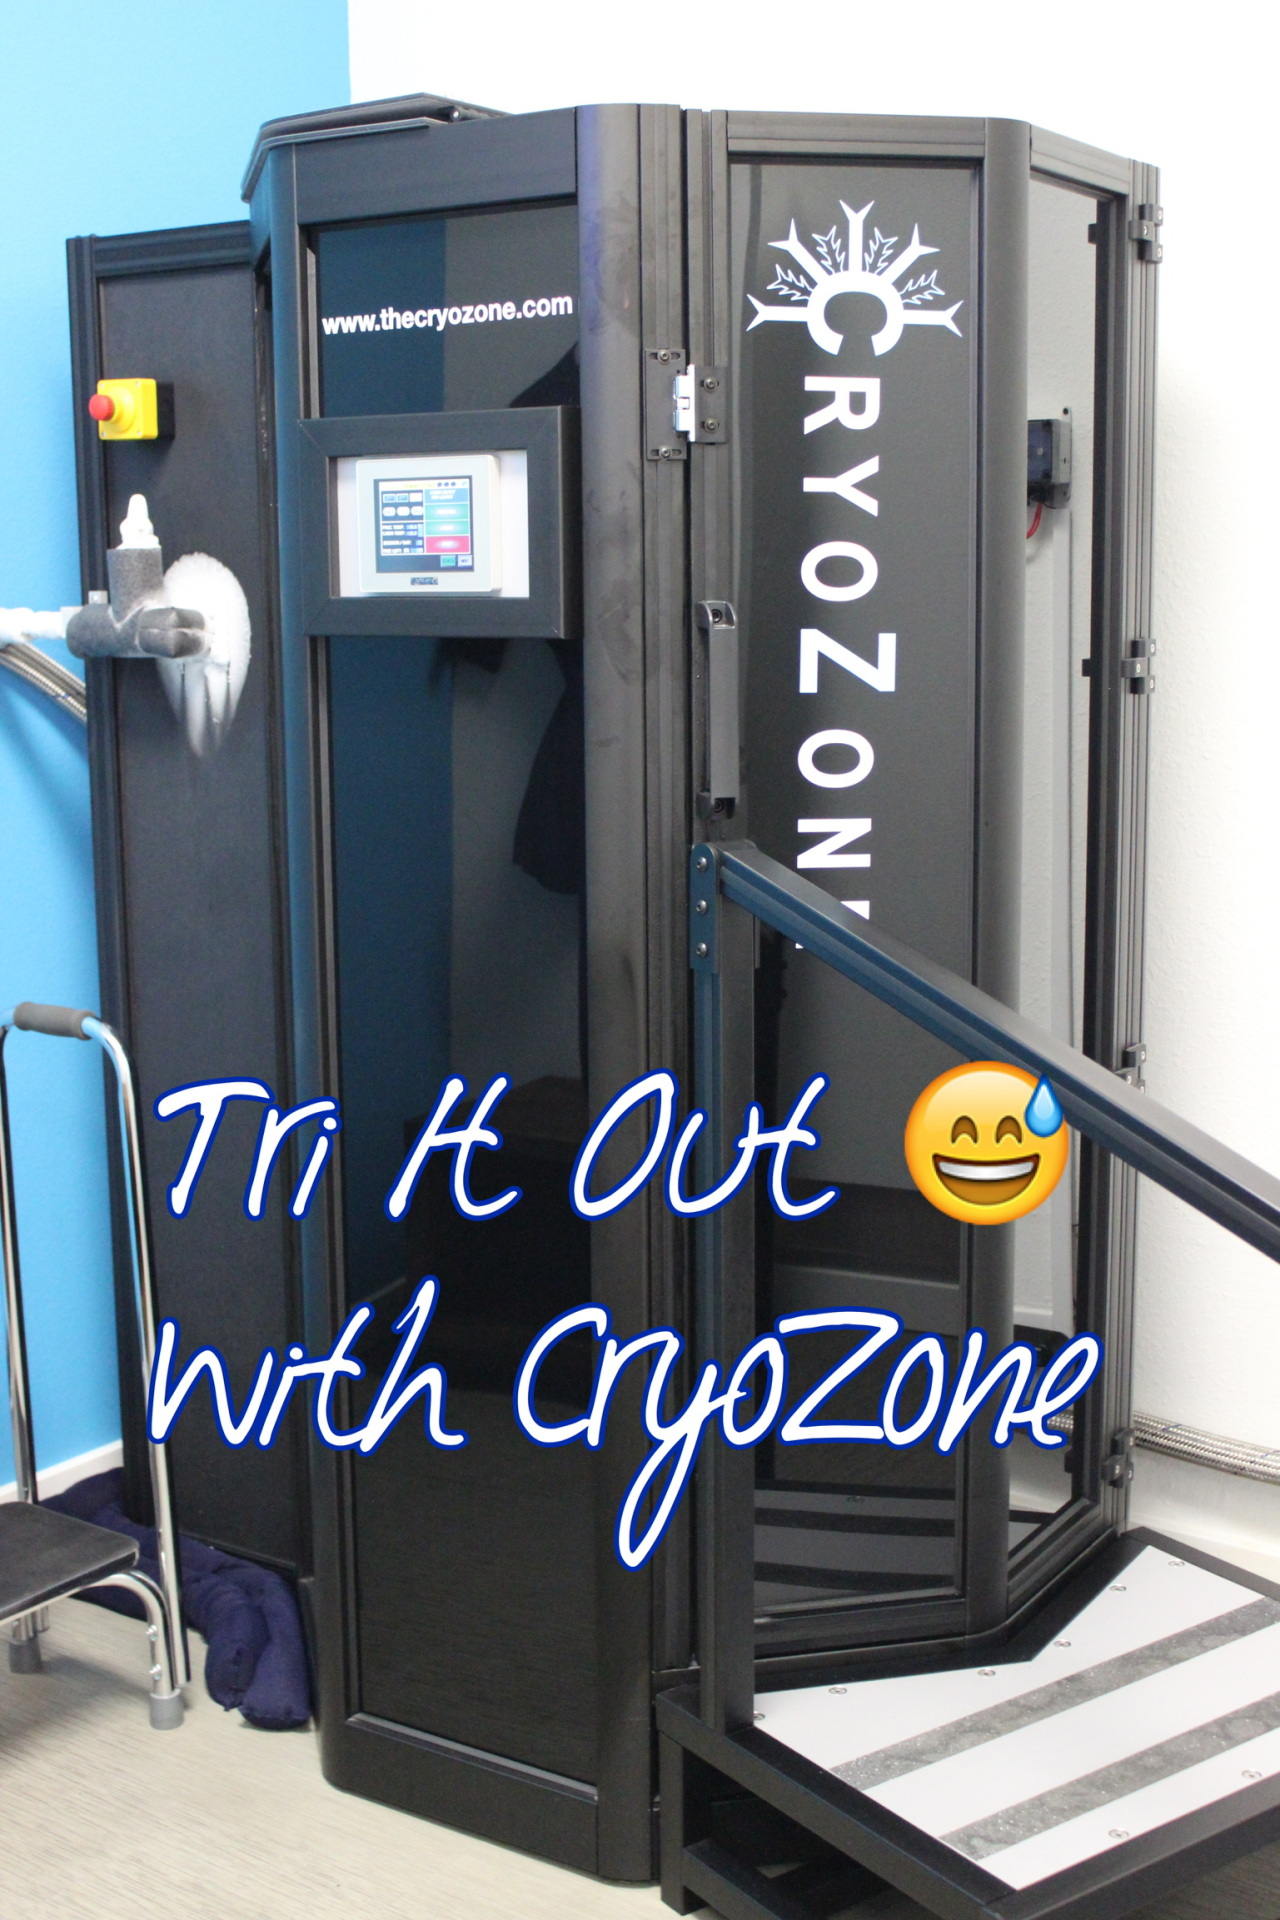 Tri It Out - CryoZone